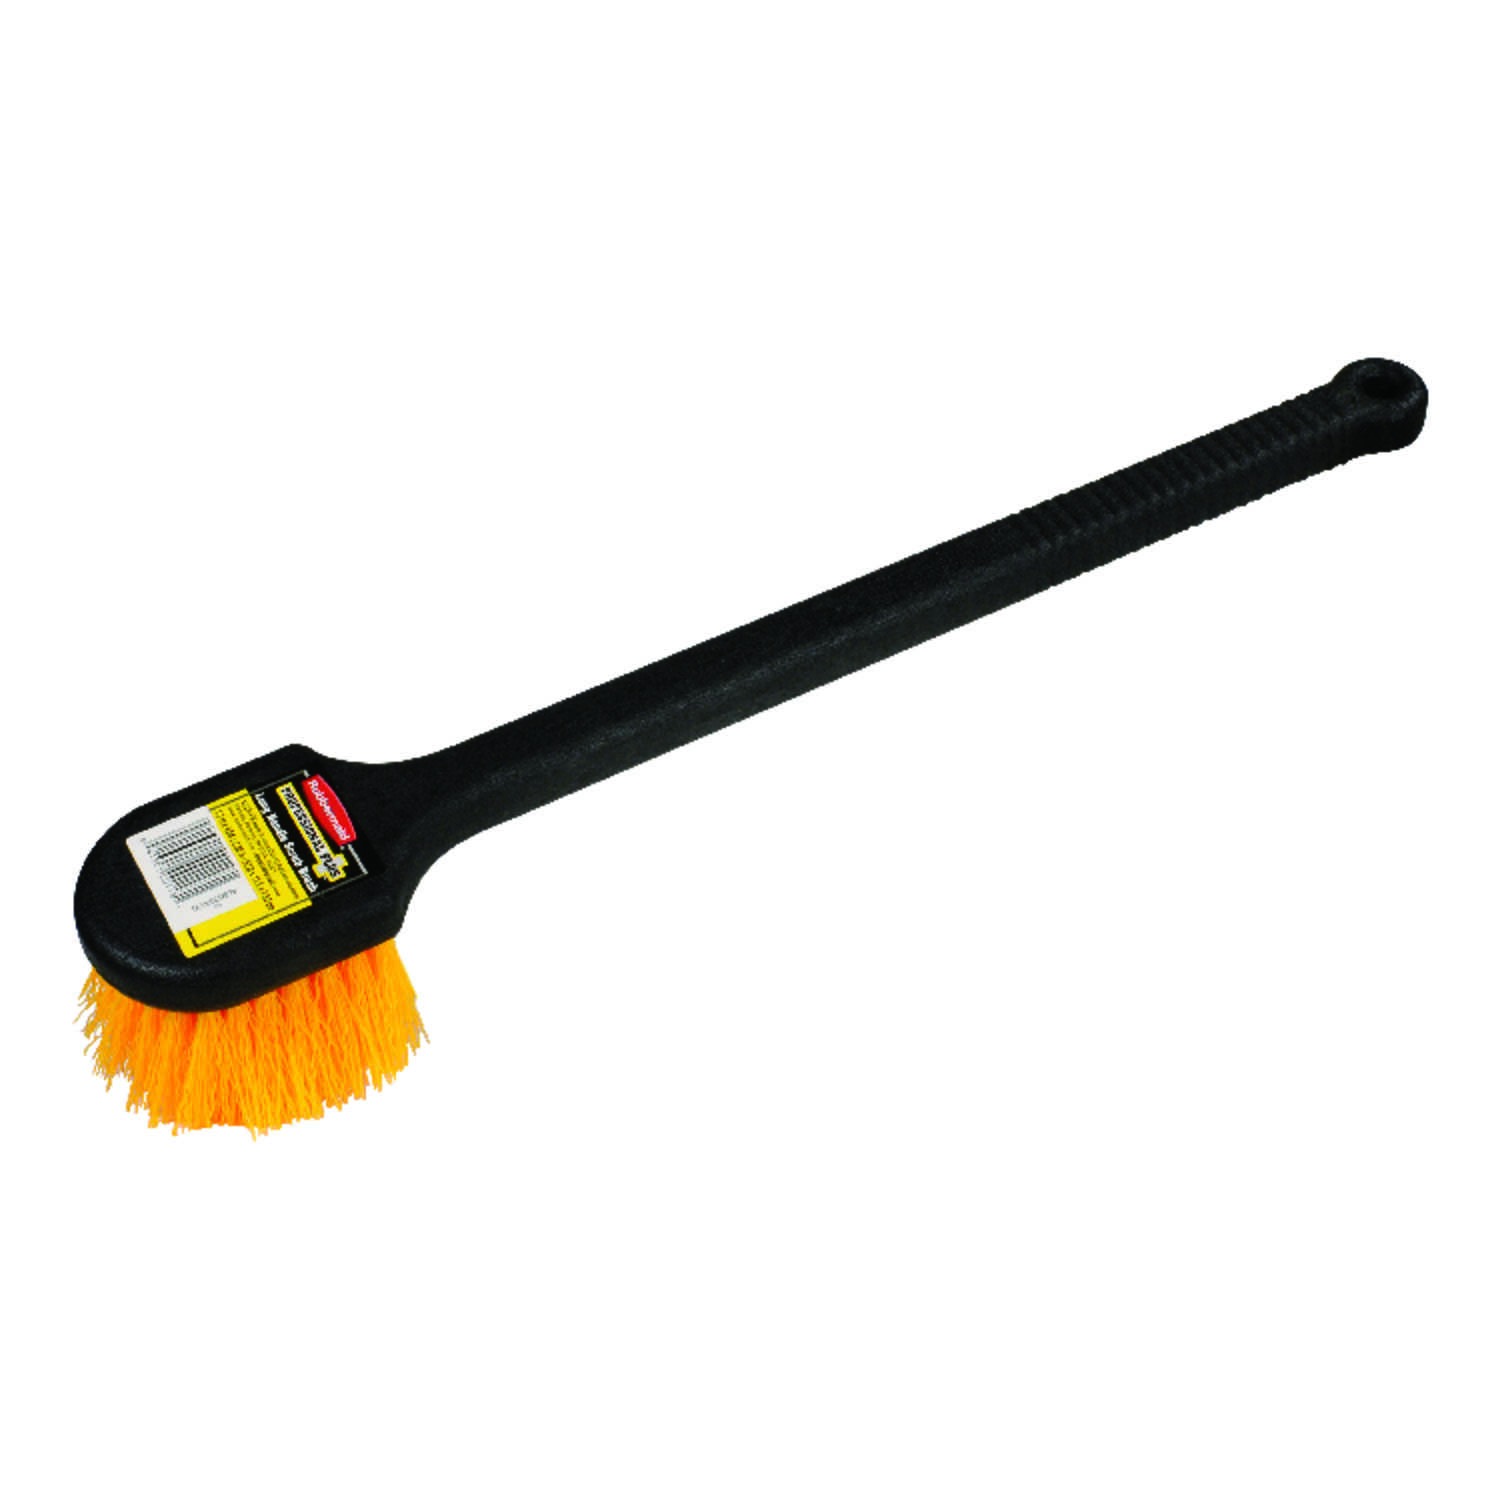 Rubbermaid  Long Handle  3-1/2 in. W Plastic  Scrub Brush